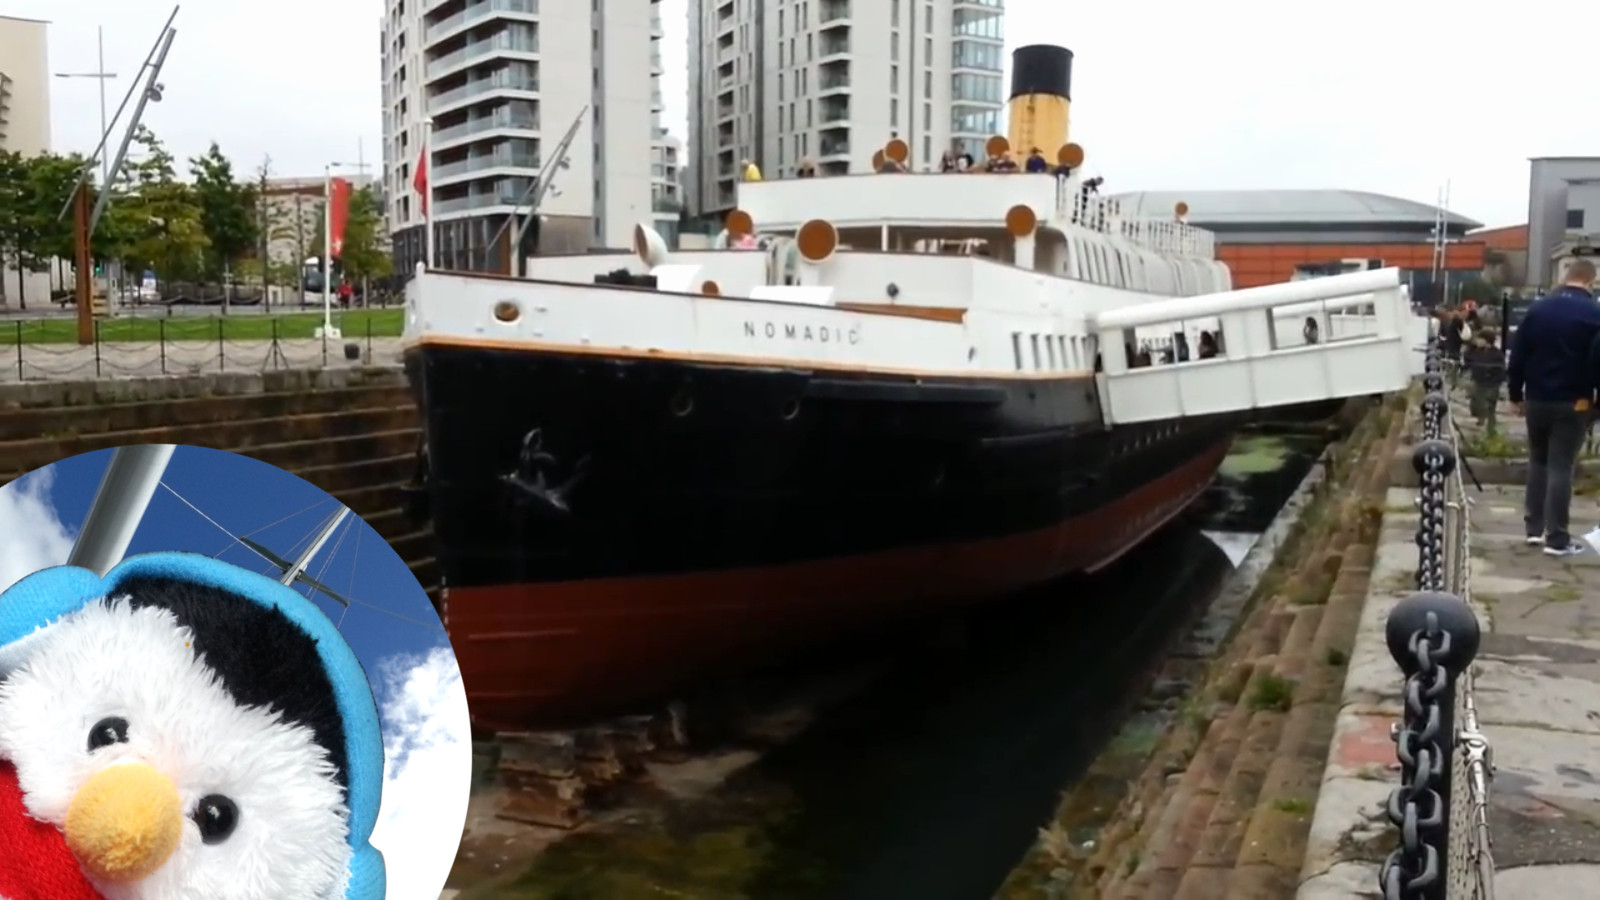 Watch our 'Titanic Video' and add comments etc.